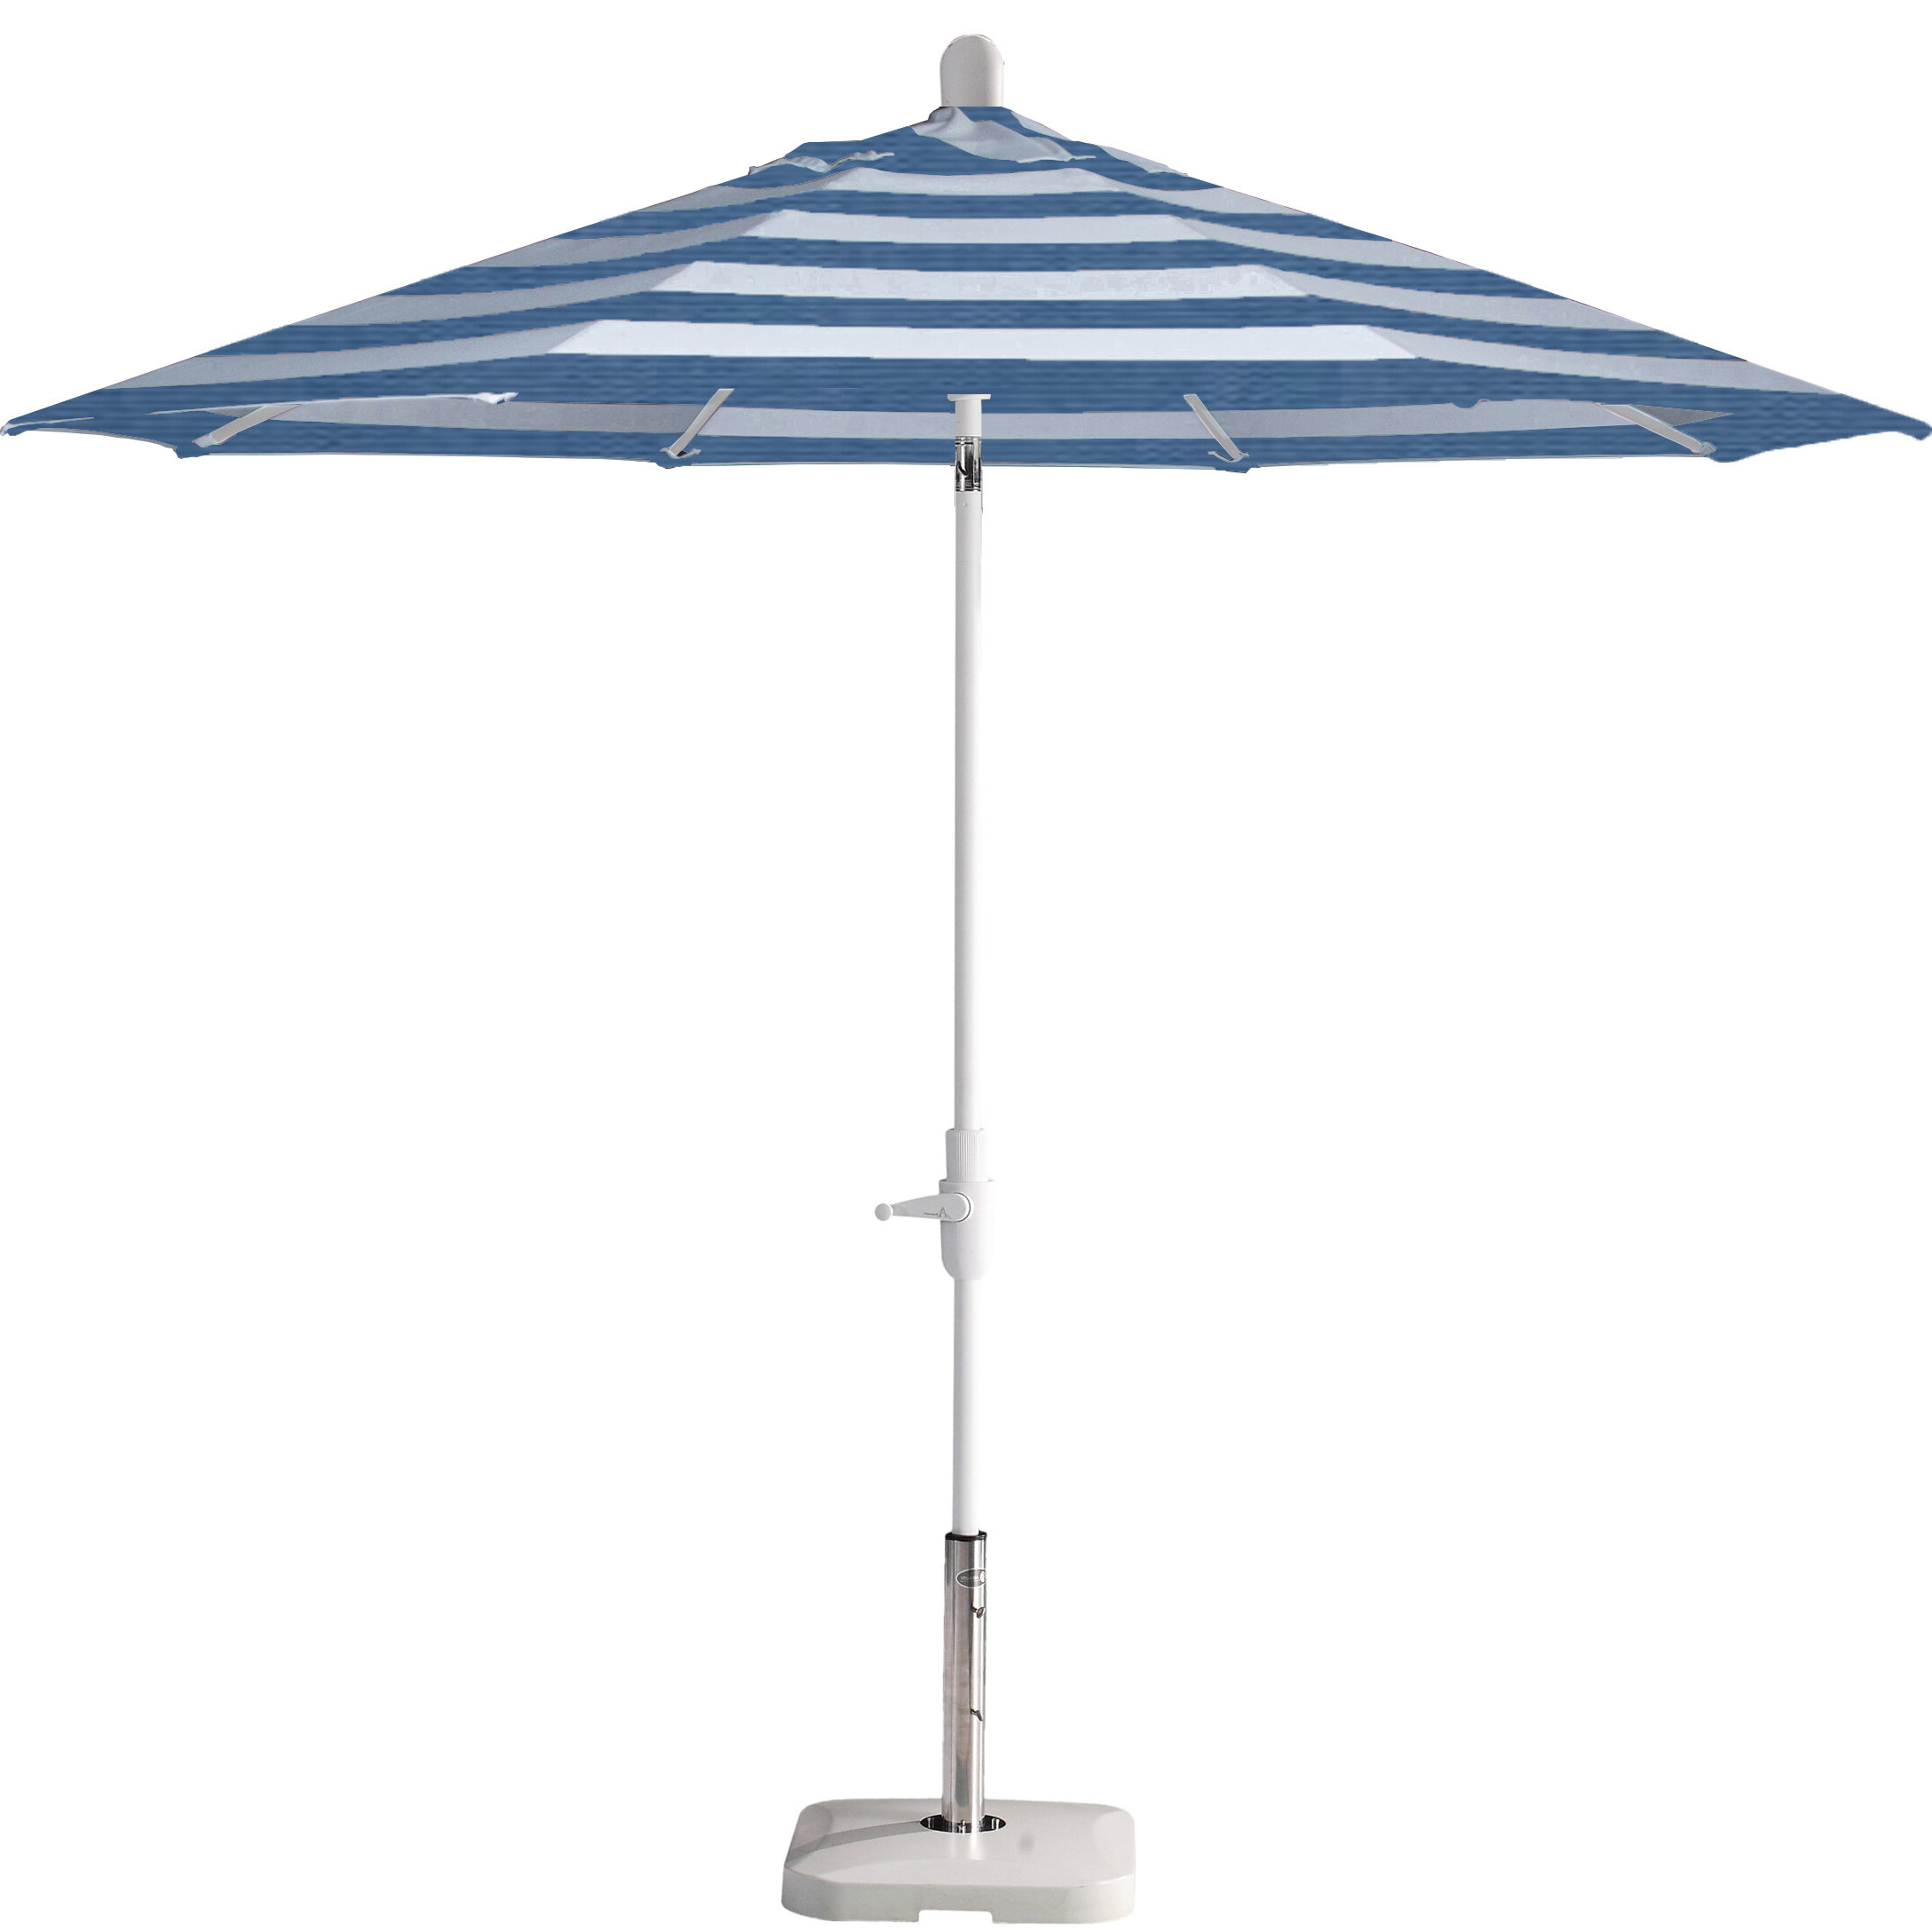 Latest Wiebe Auto Tilt 9' Market Sunbrella Umbrella Inside Wiebe Market Sunbrella Umbrellas (View 5 of 20)